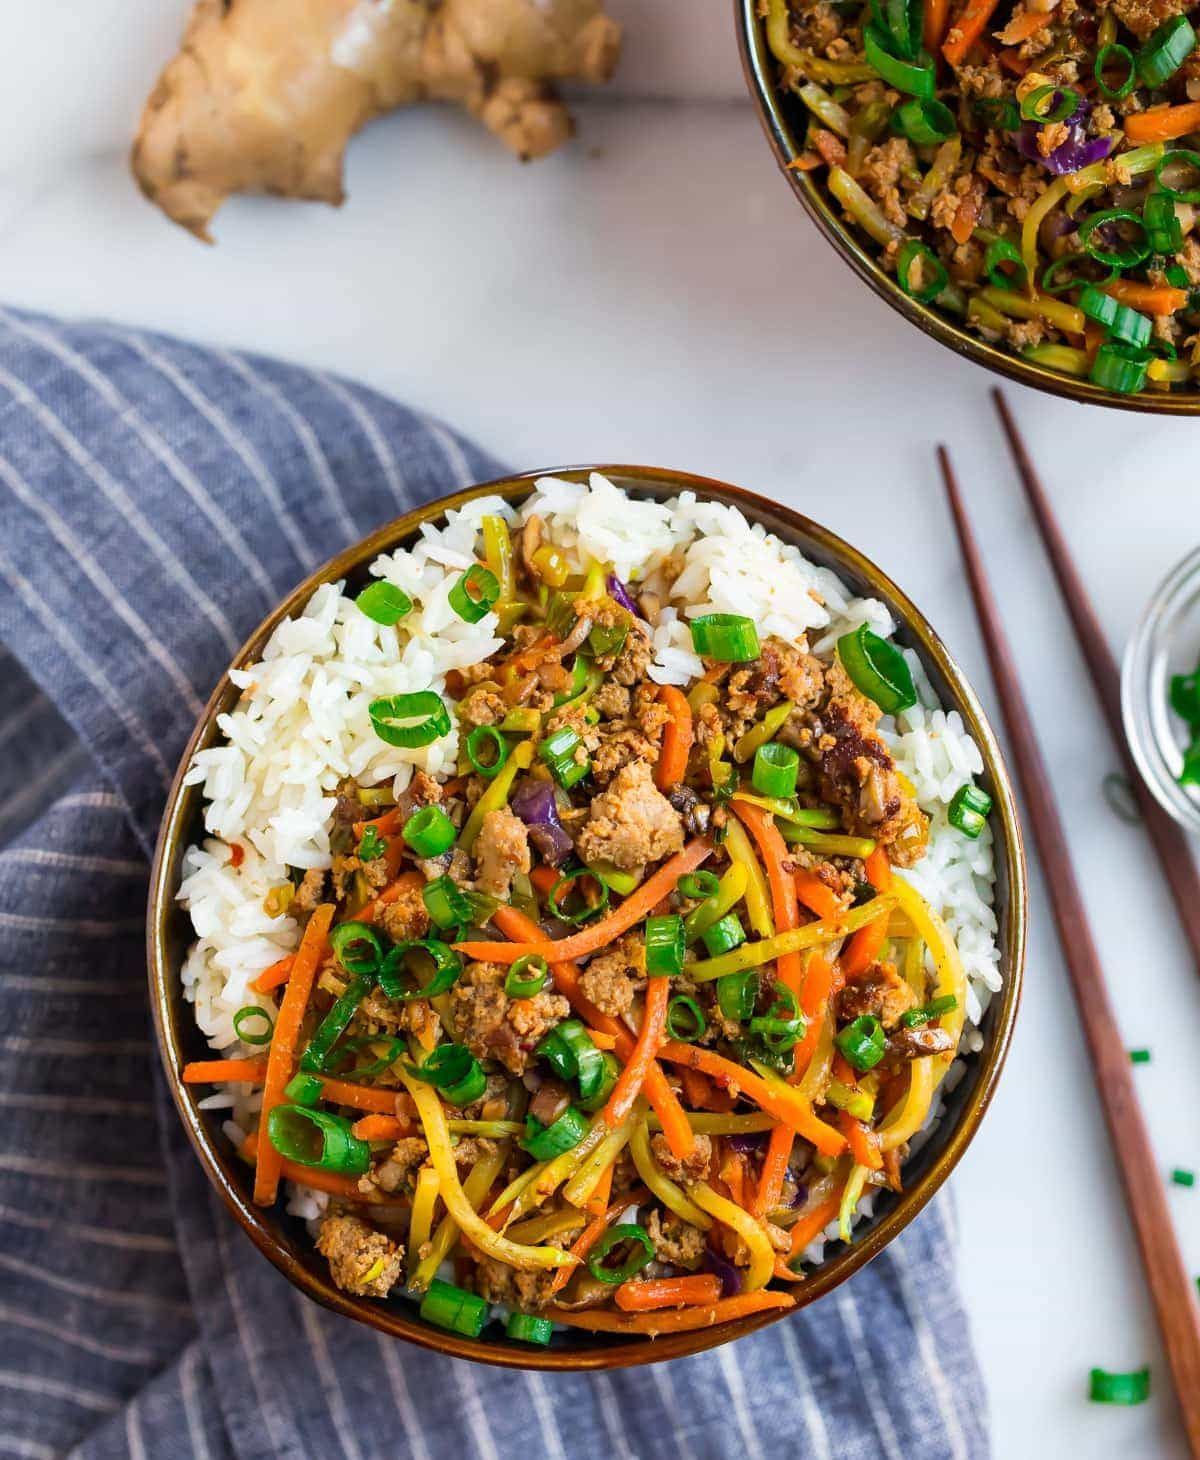 15 Healthy Wok Recipes That Will Be Ready In No Time